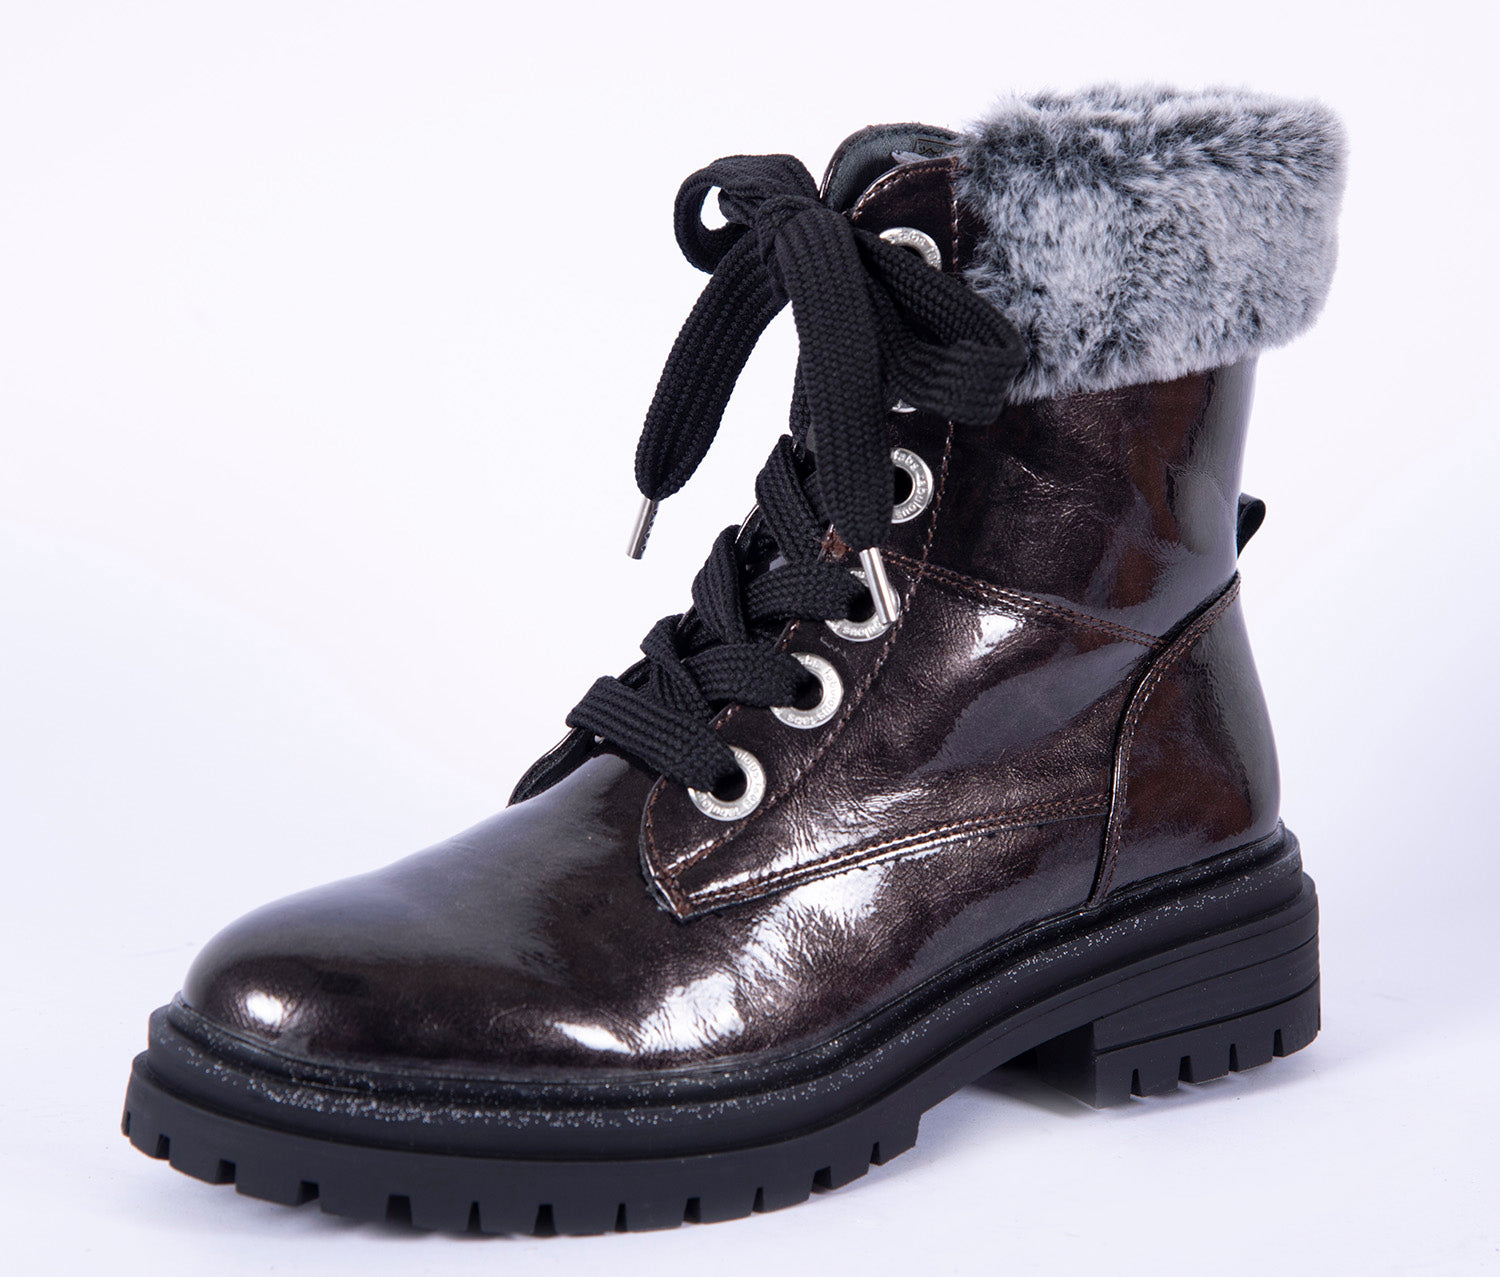 Fabs flat tie boots with side zip fastening